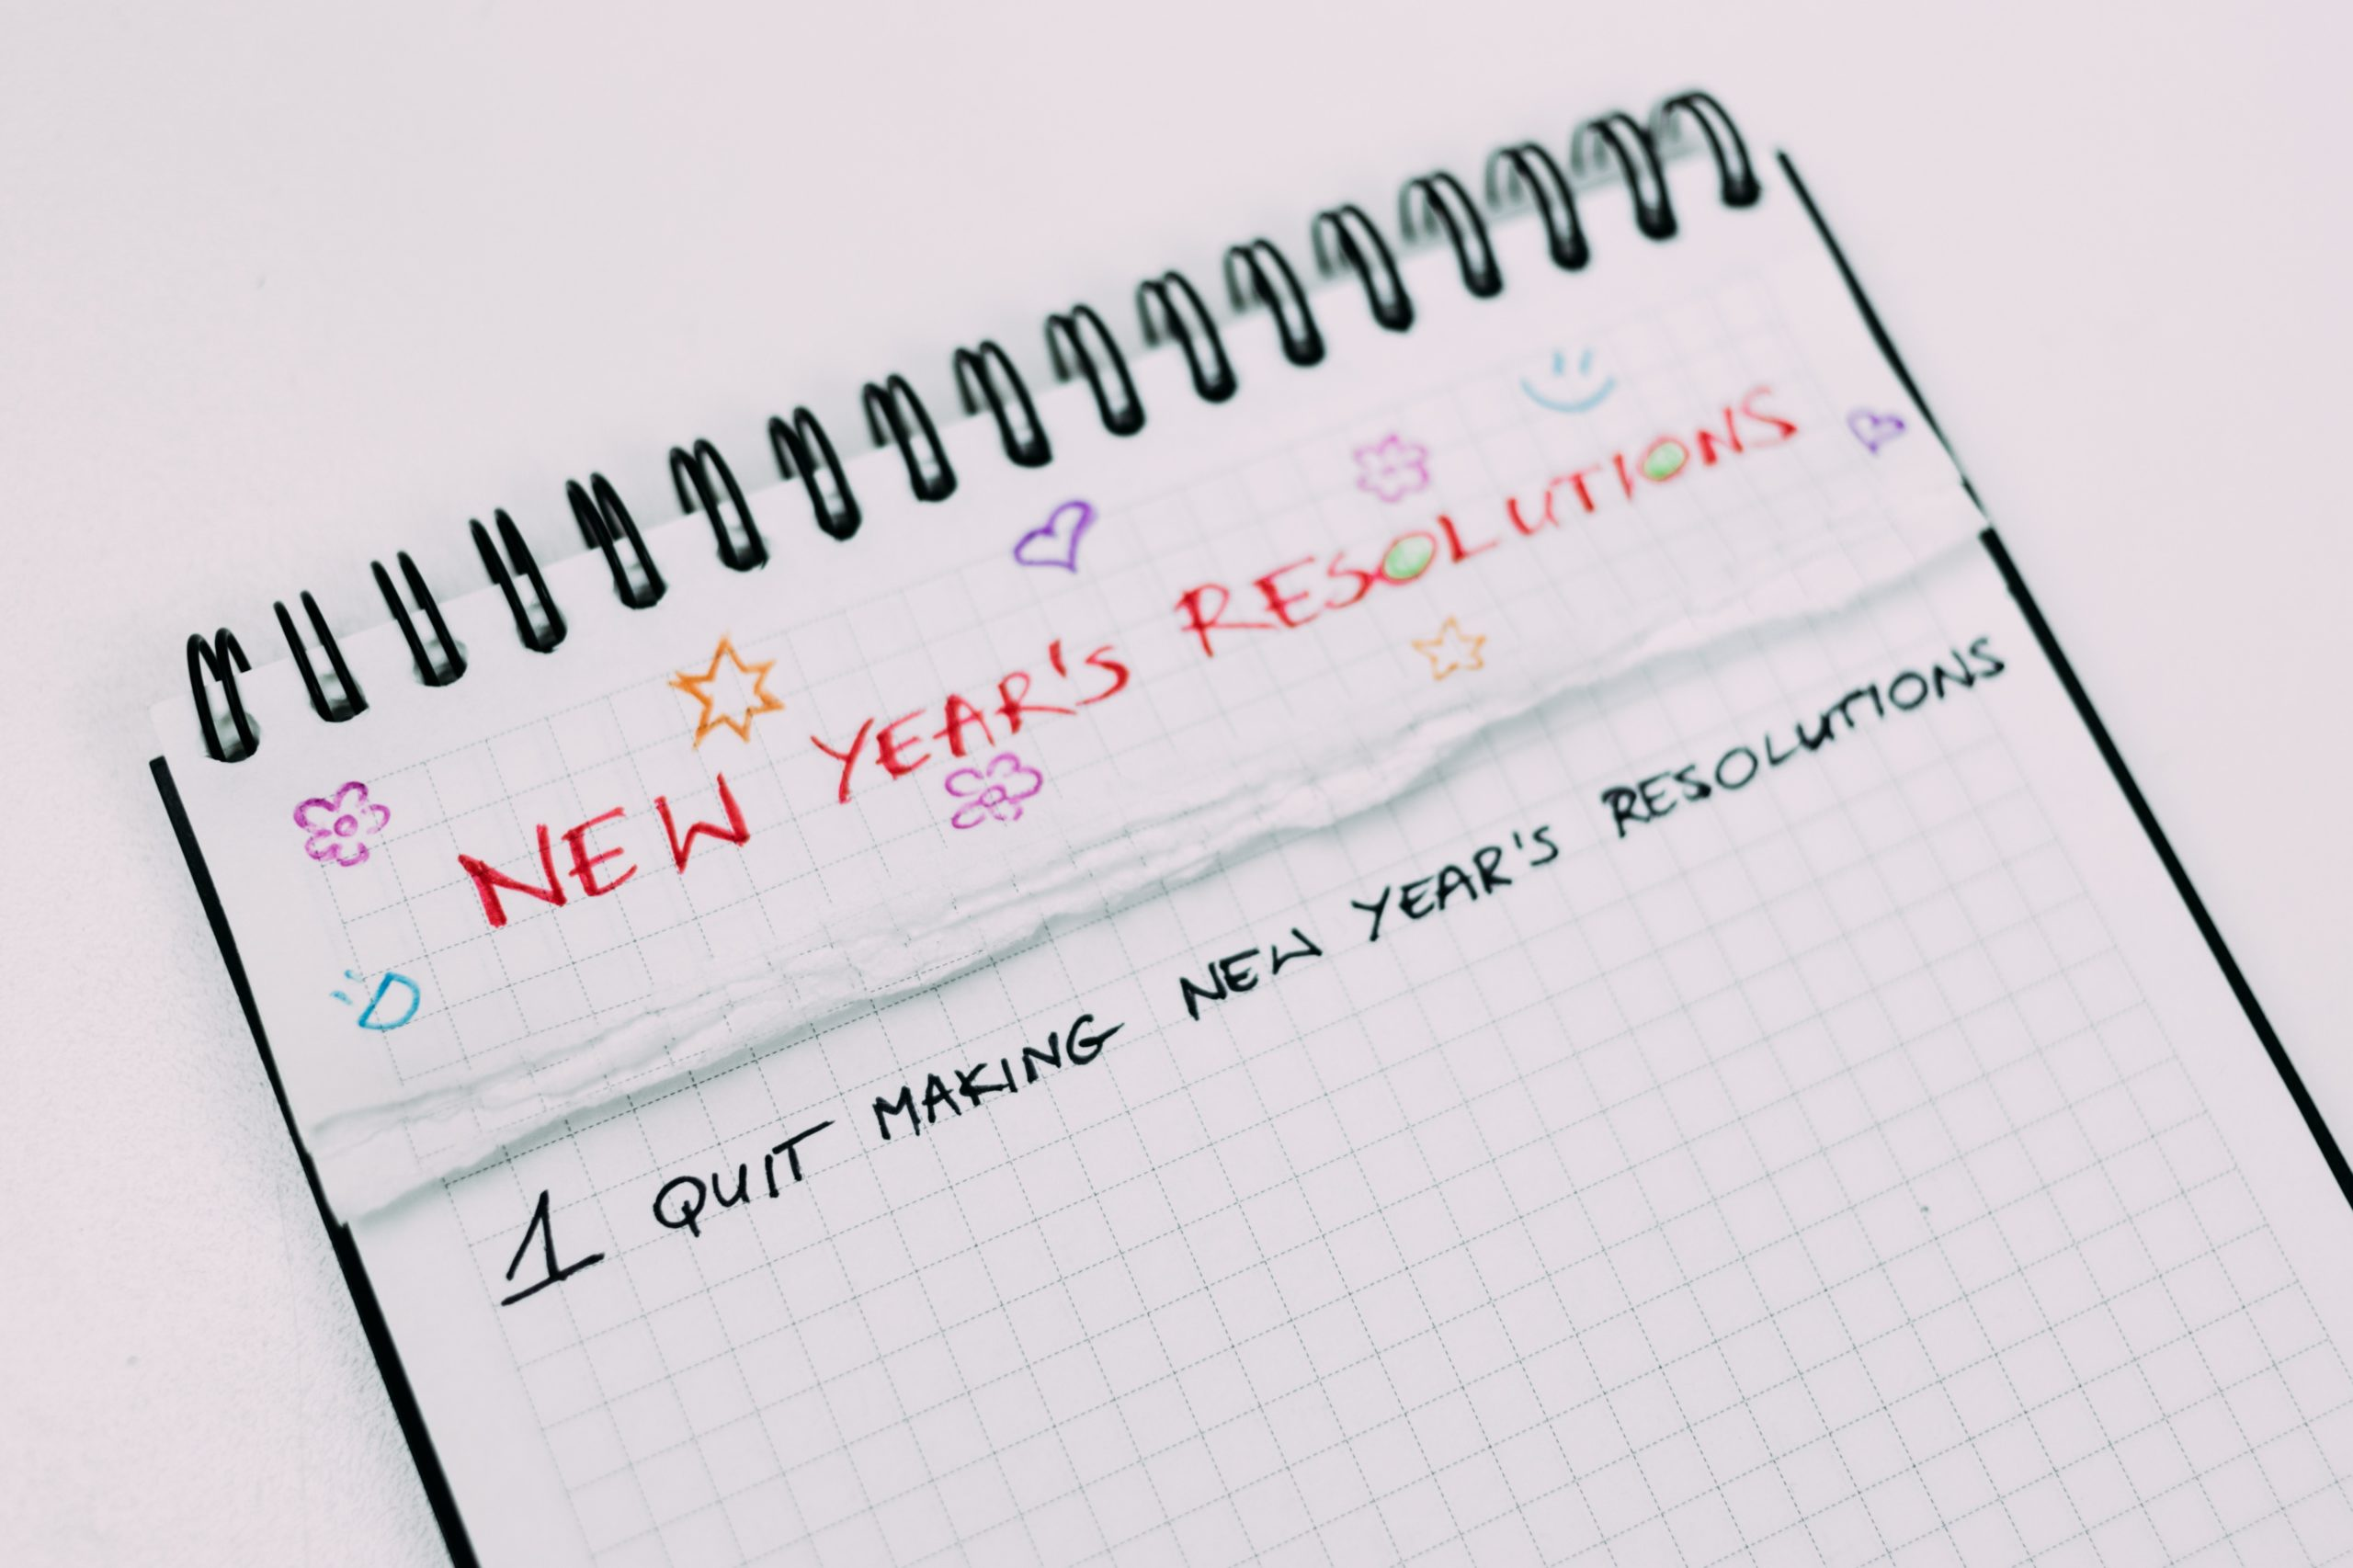 """Notebook with a list of new year's resolutions. Only one item is on the list """"quit making new year's resolutions""""."""